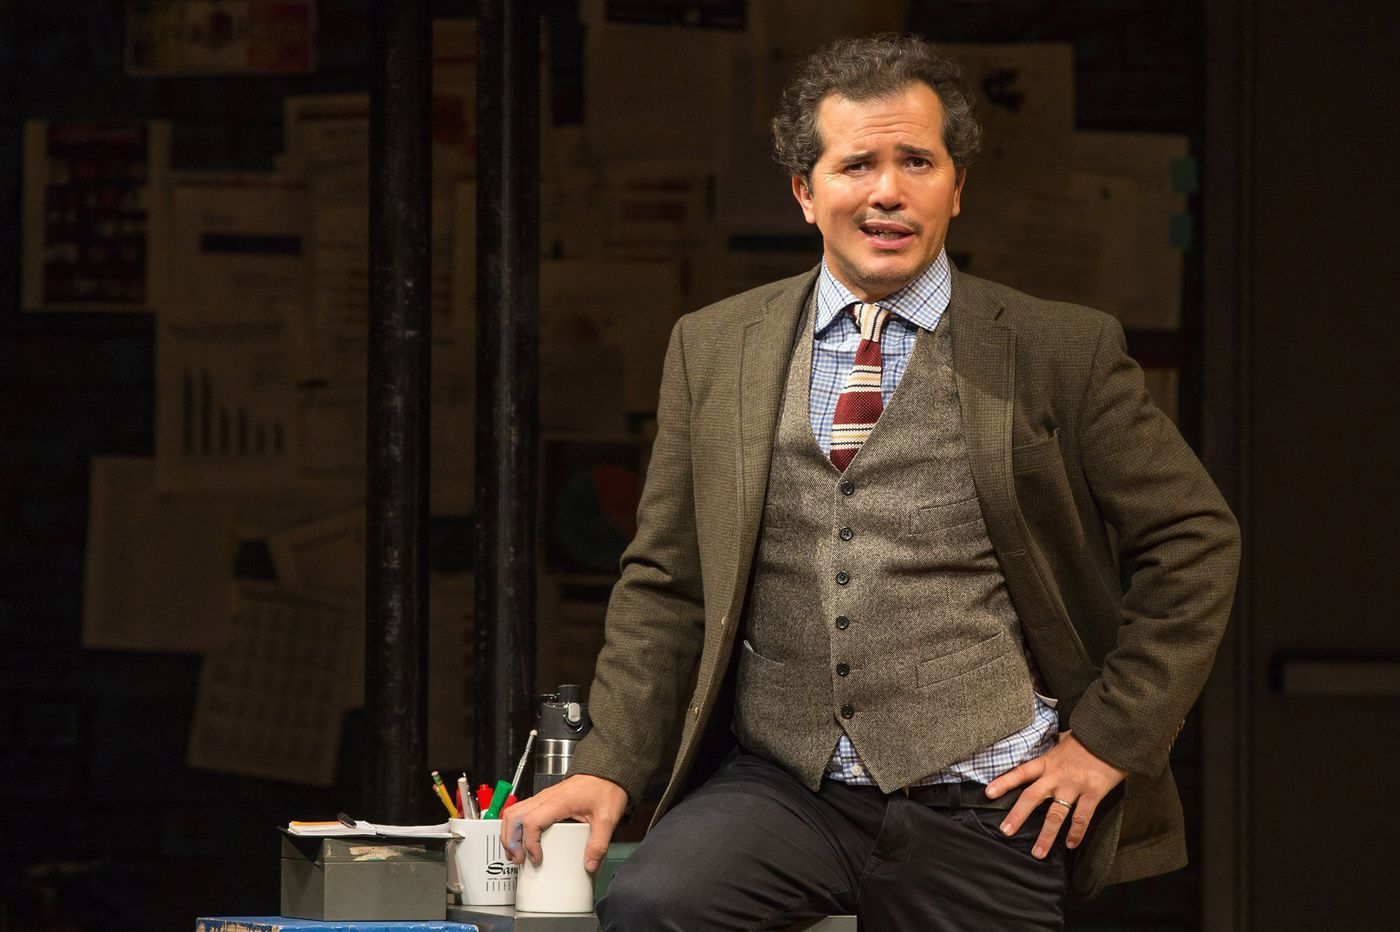 John Leguizamo on 'Latin History for Morons': 'Courage to say what I want to say'